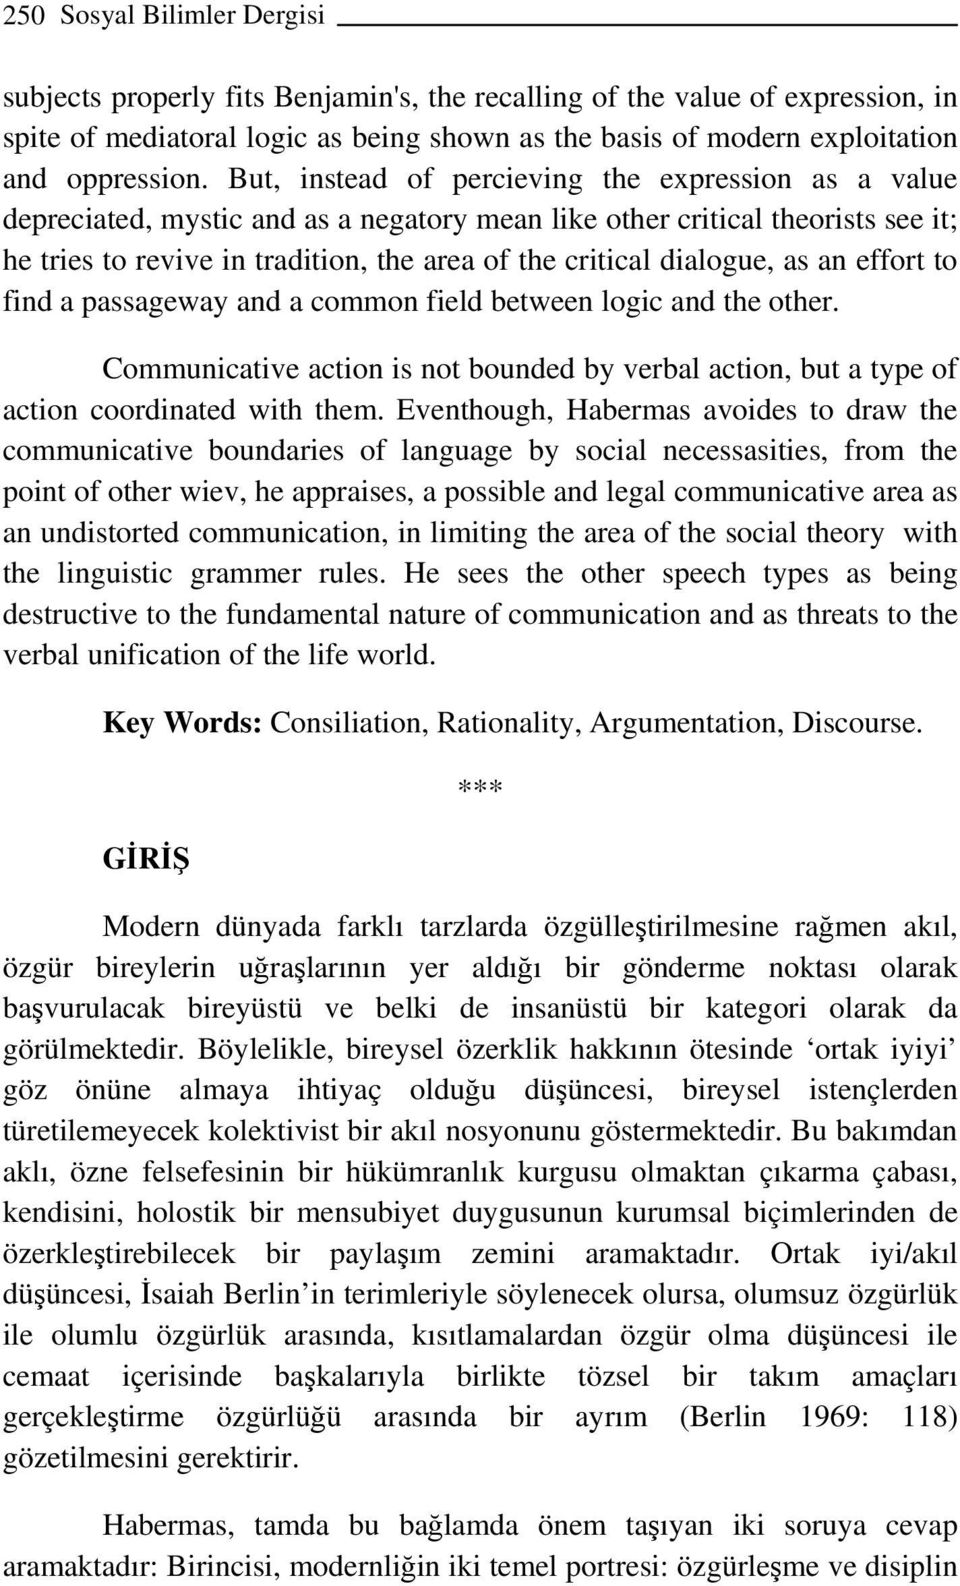 dialogue, as an effort to find a passageway and a common field between logic and the other. Communicative action is not bounded by verbal action, but a type of action coordinated with them.